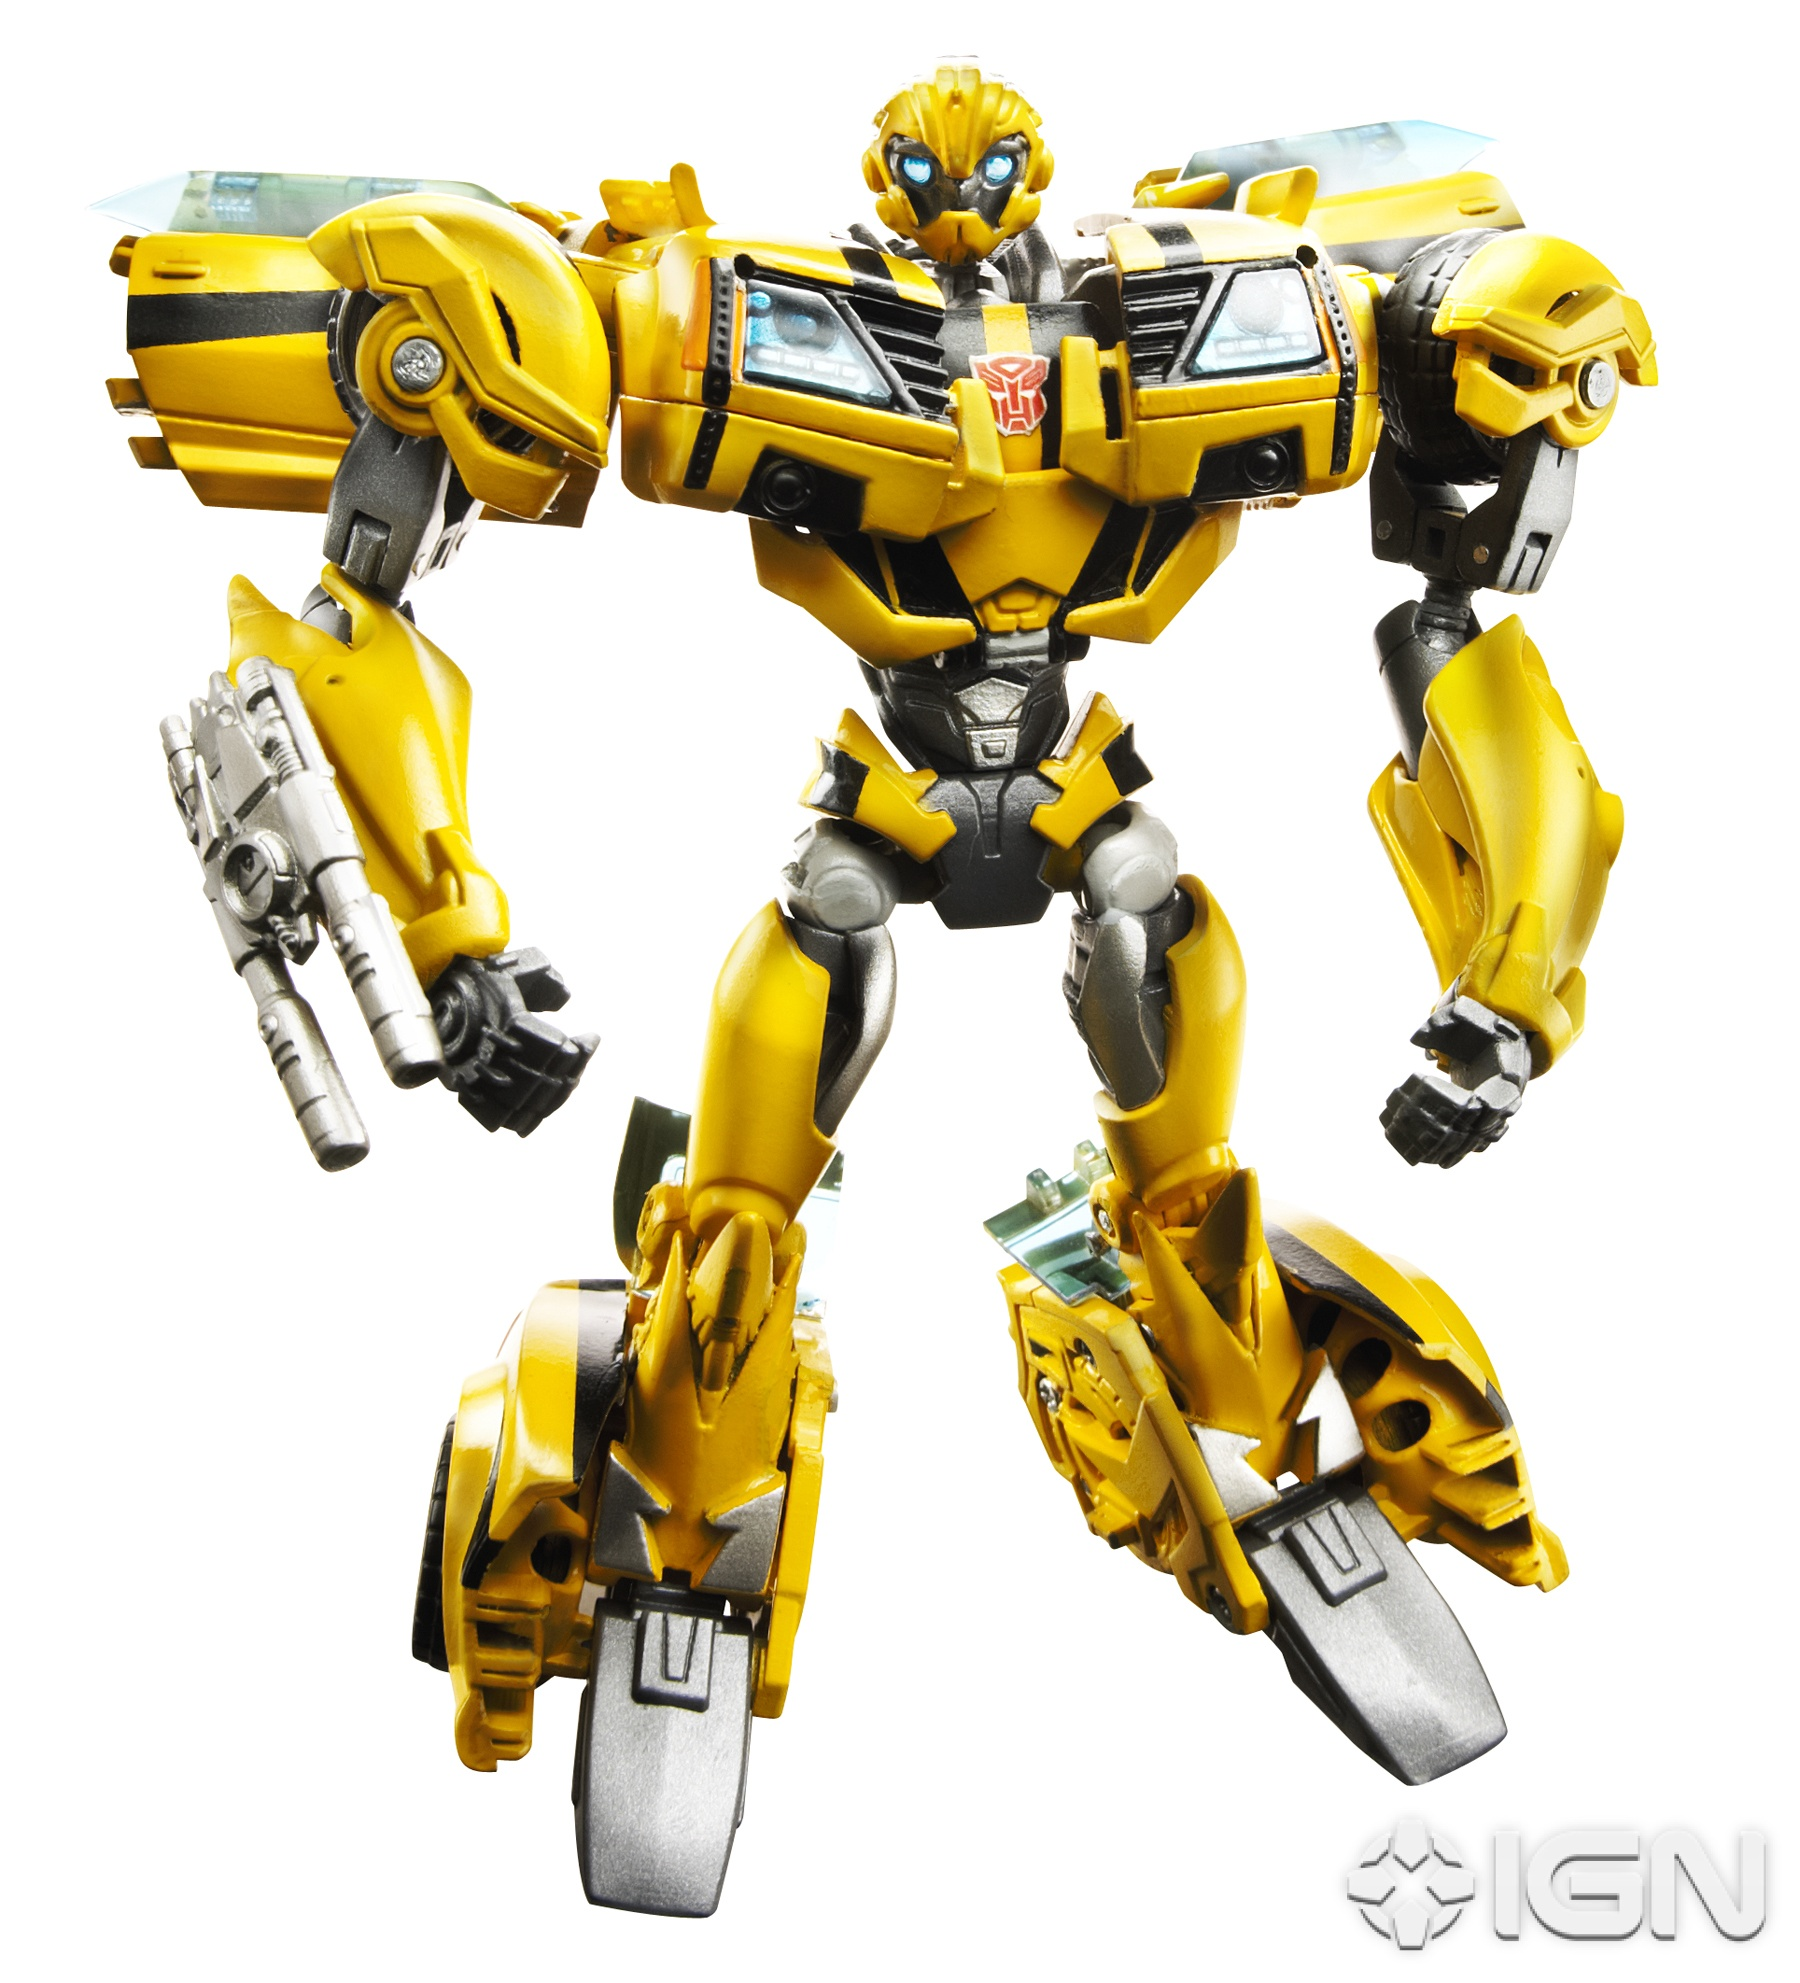 Transformers prime deluxe bumblebee toy revealed transformers news tfw2005 - Images of bumblebee from transformers ...